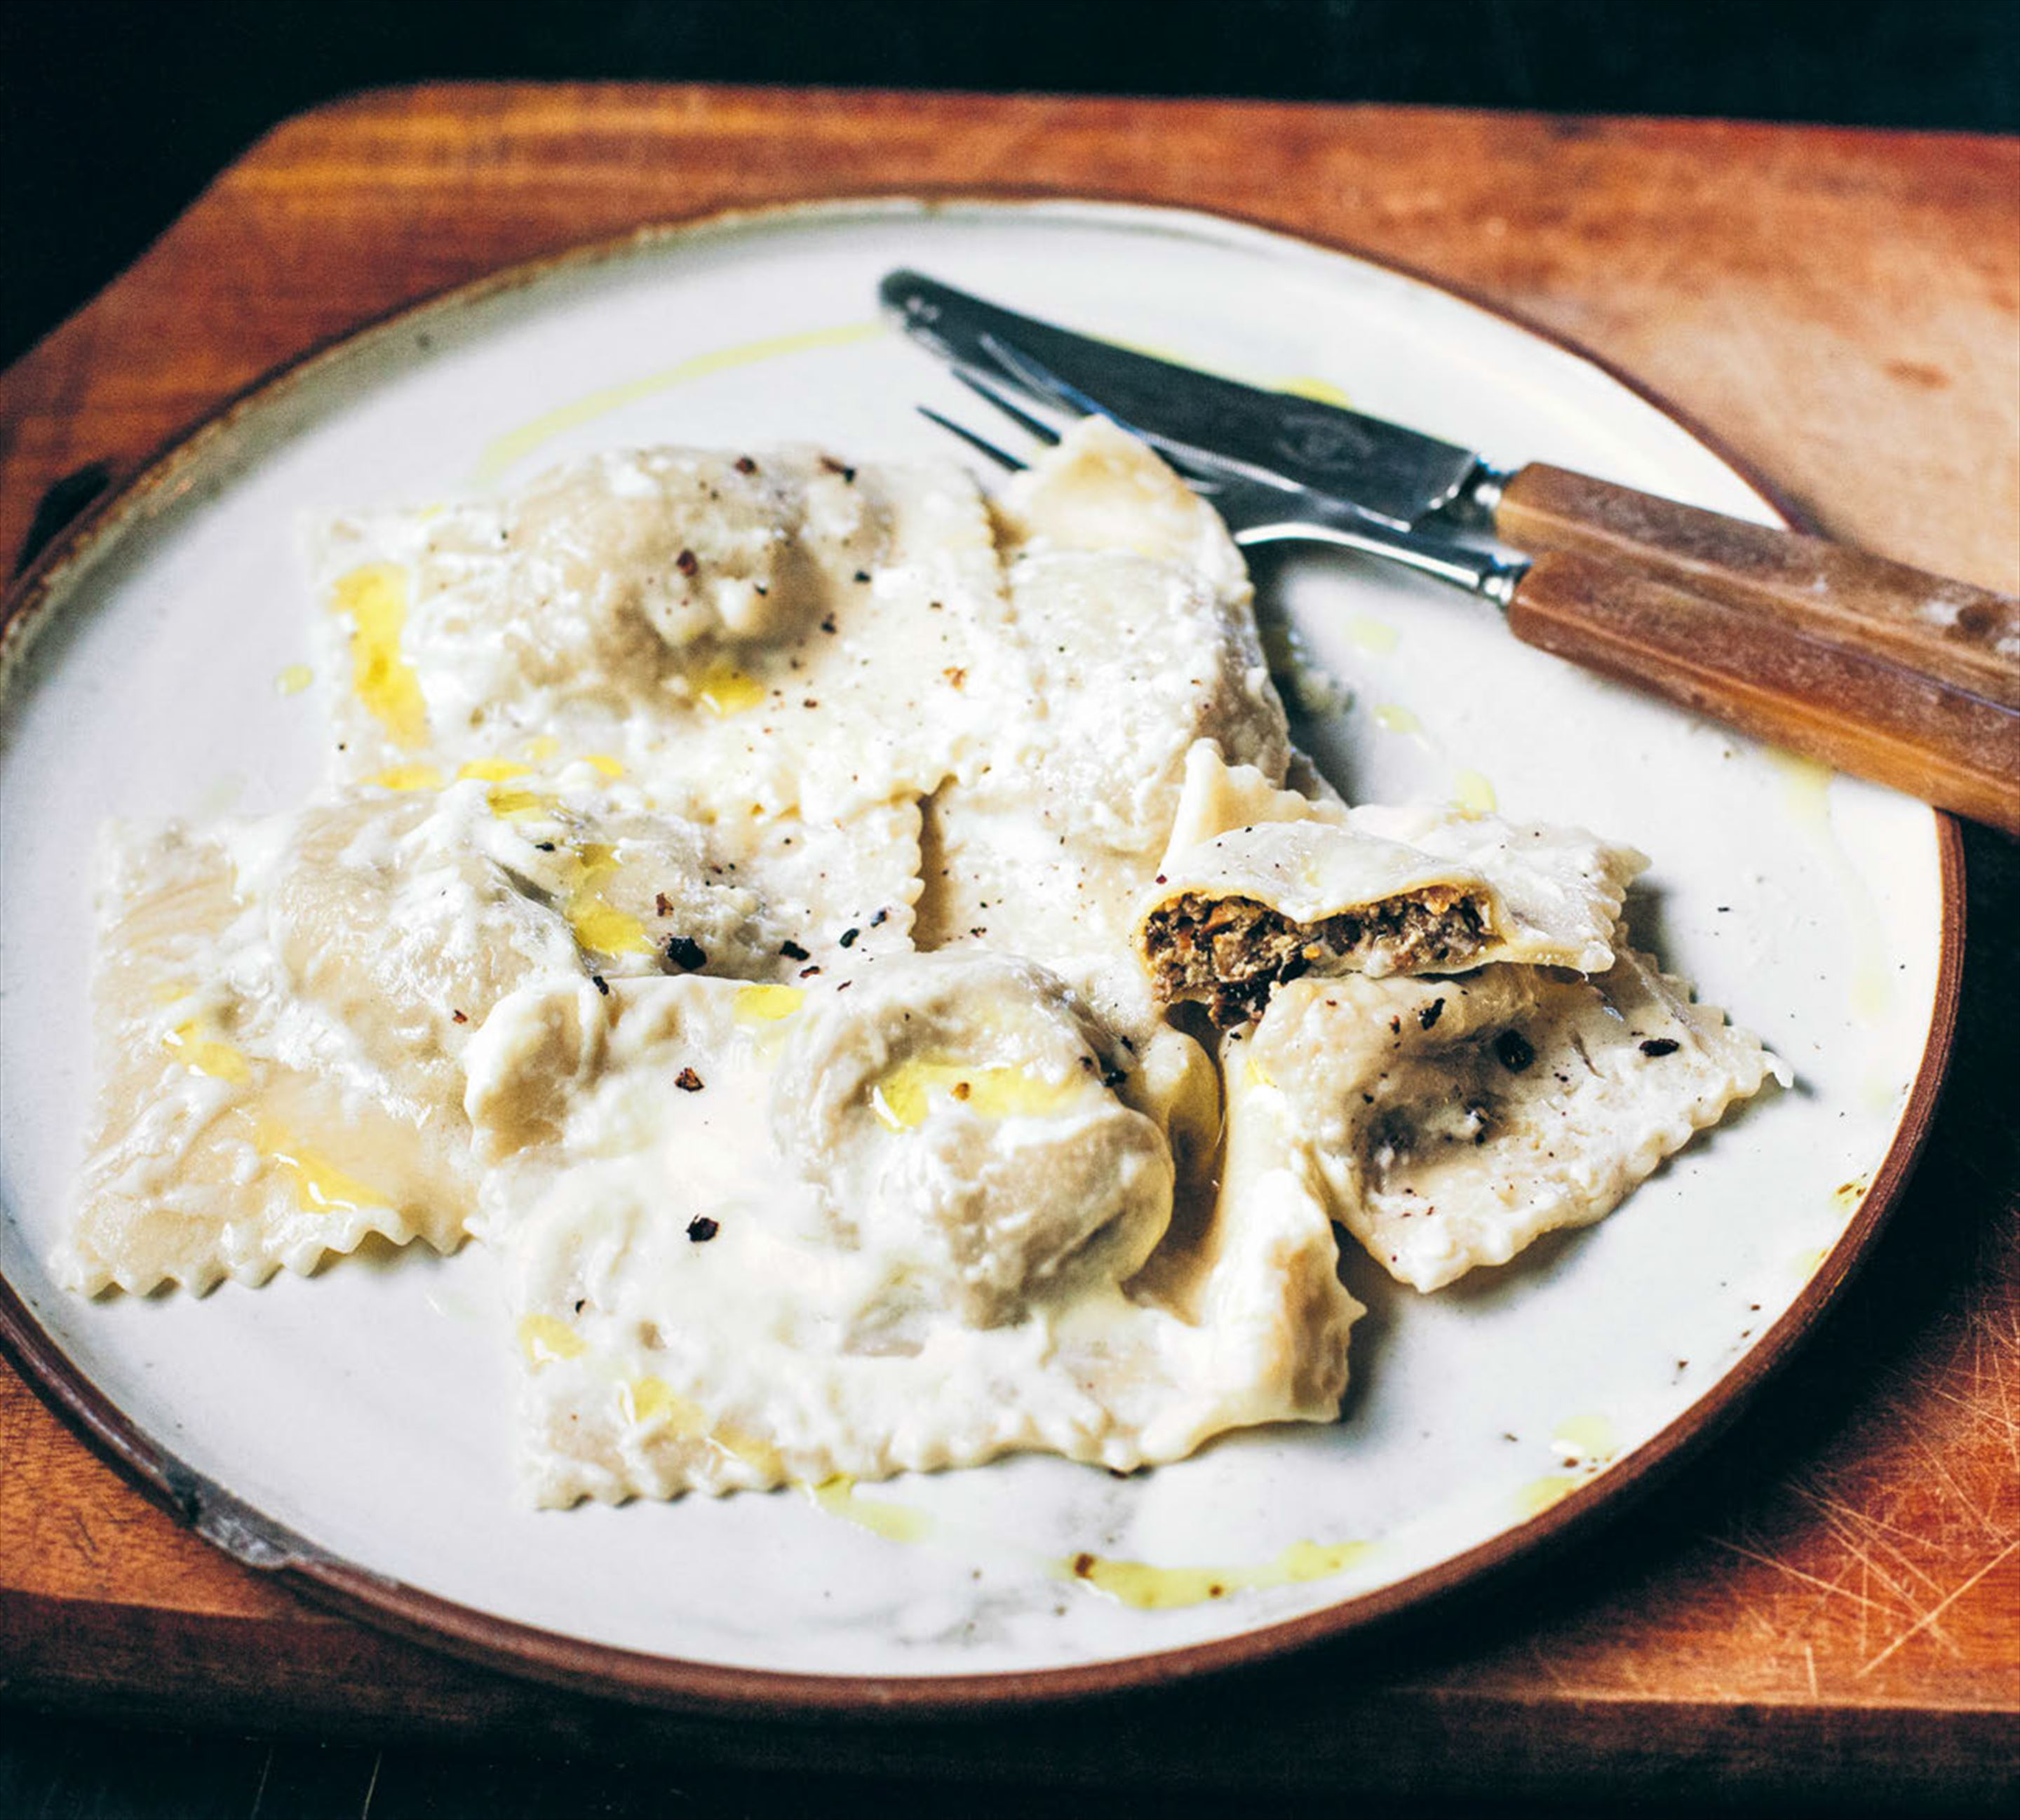 Three-way wild mushroom ravioli